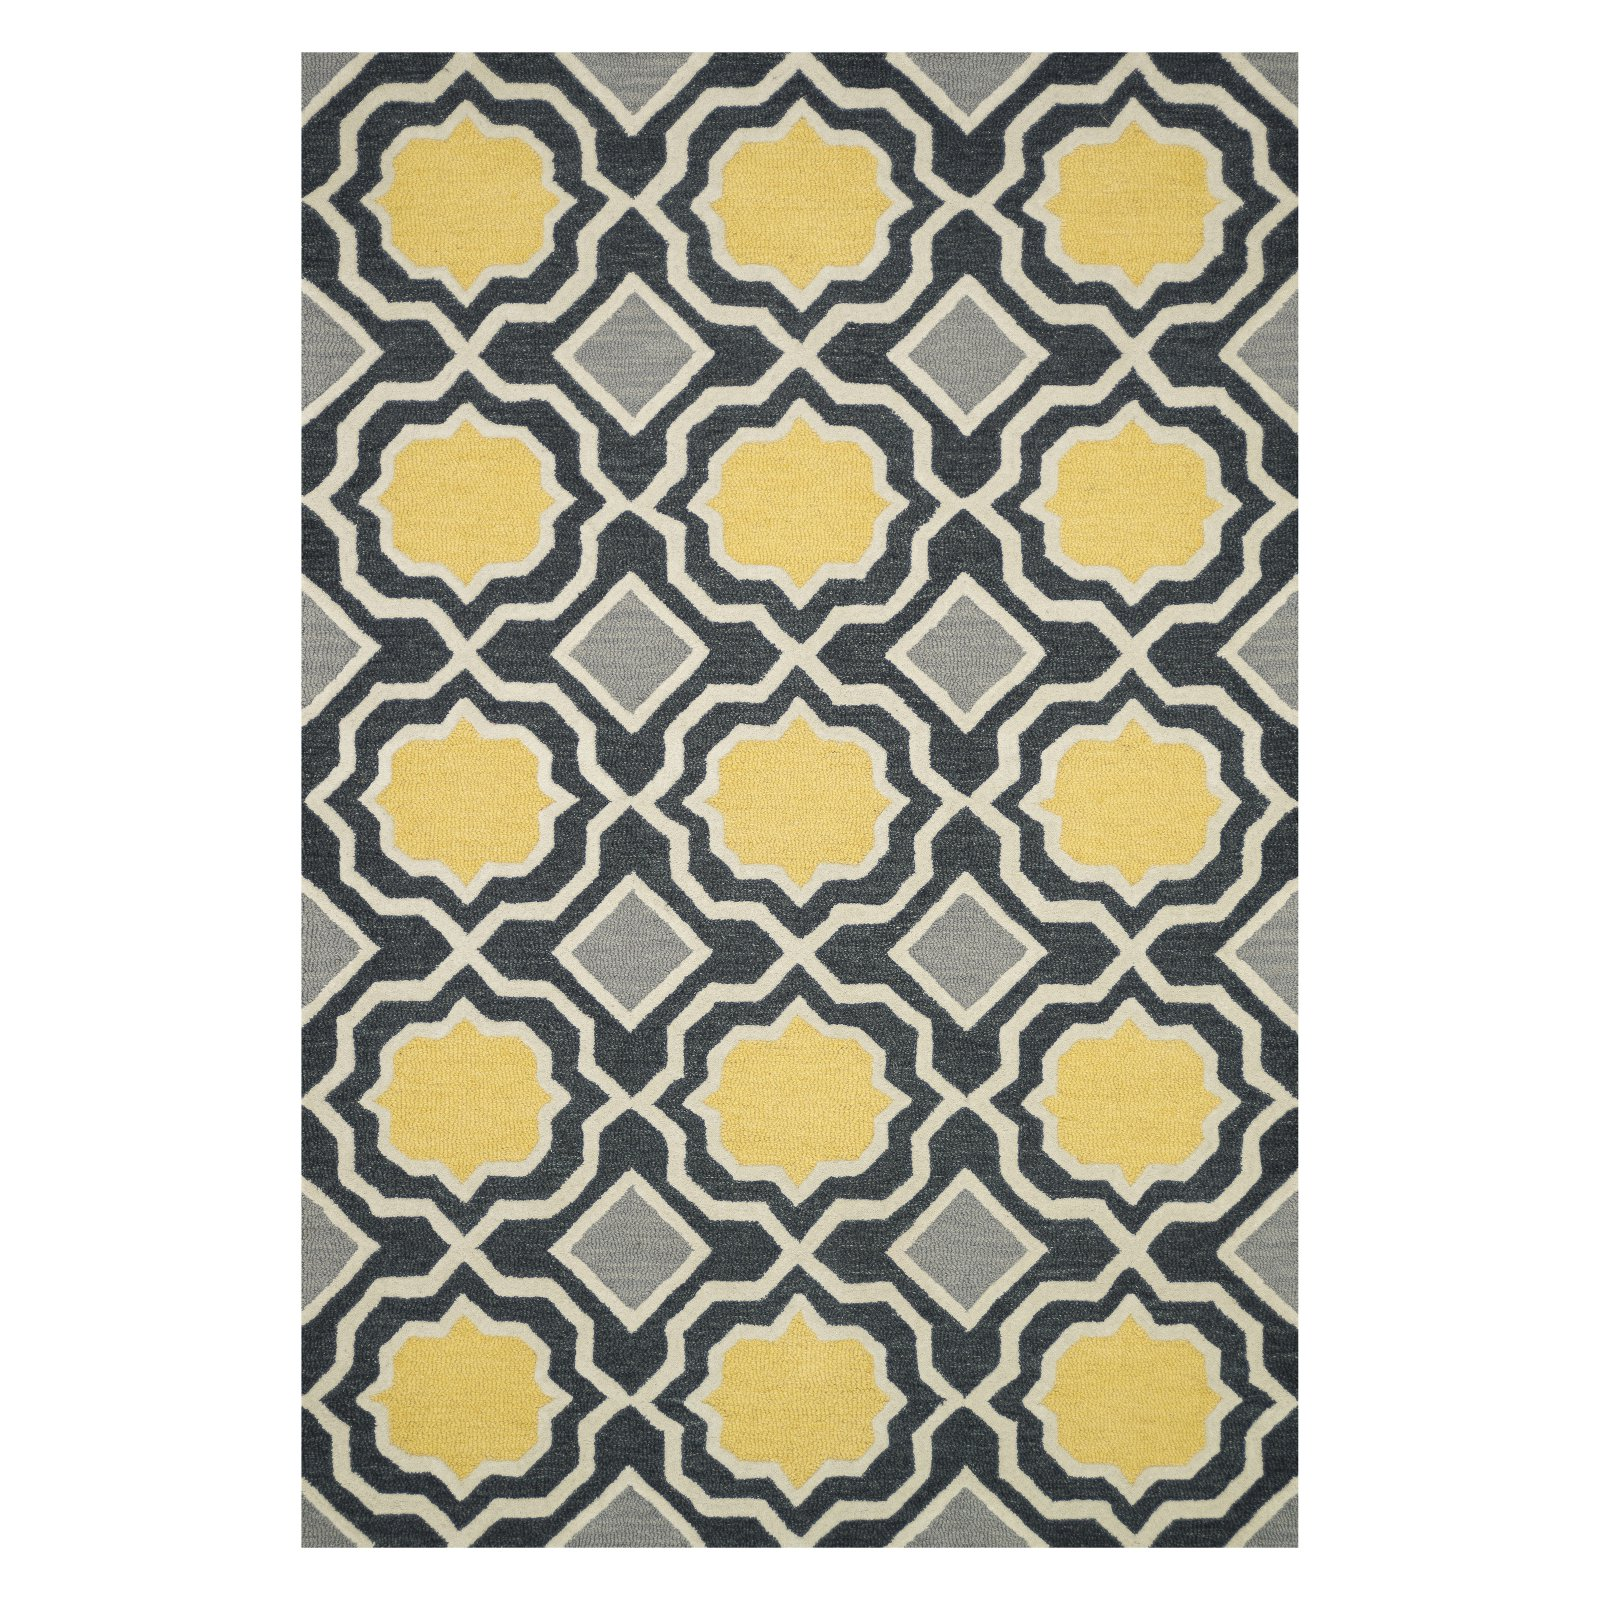 Loloi Weston Area Rug - Charcoal / Gold